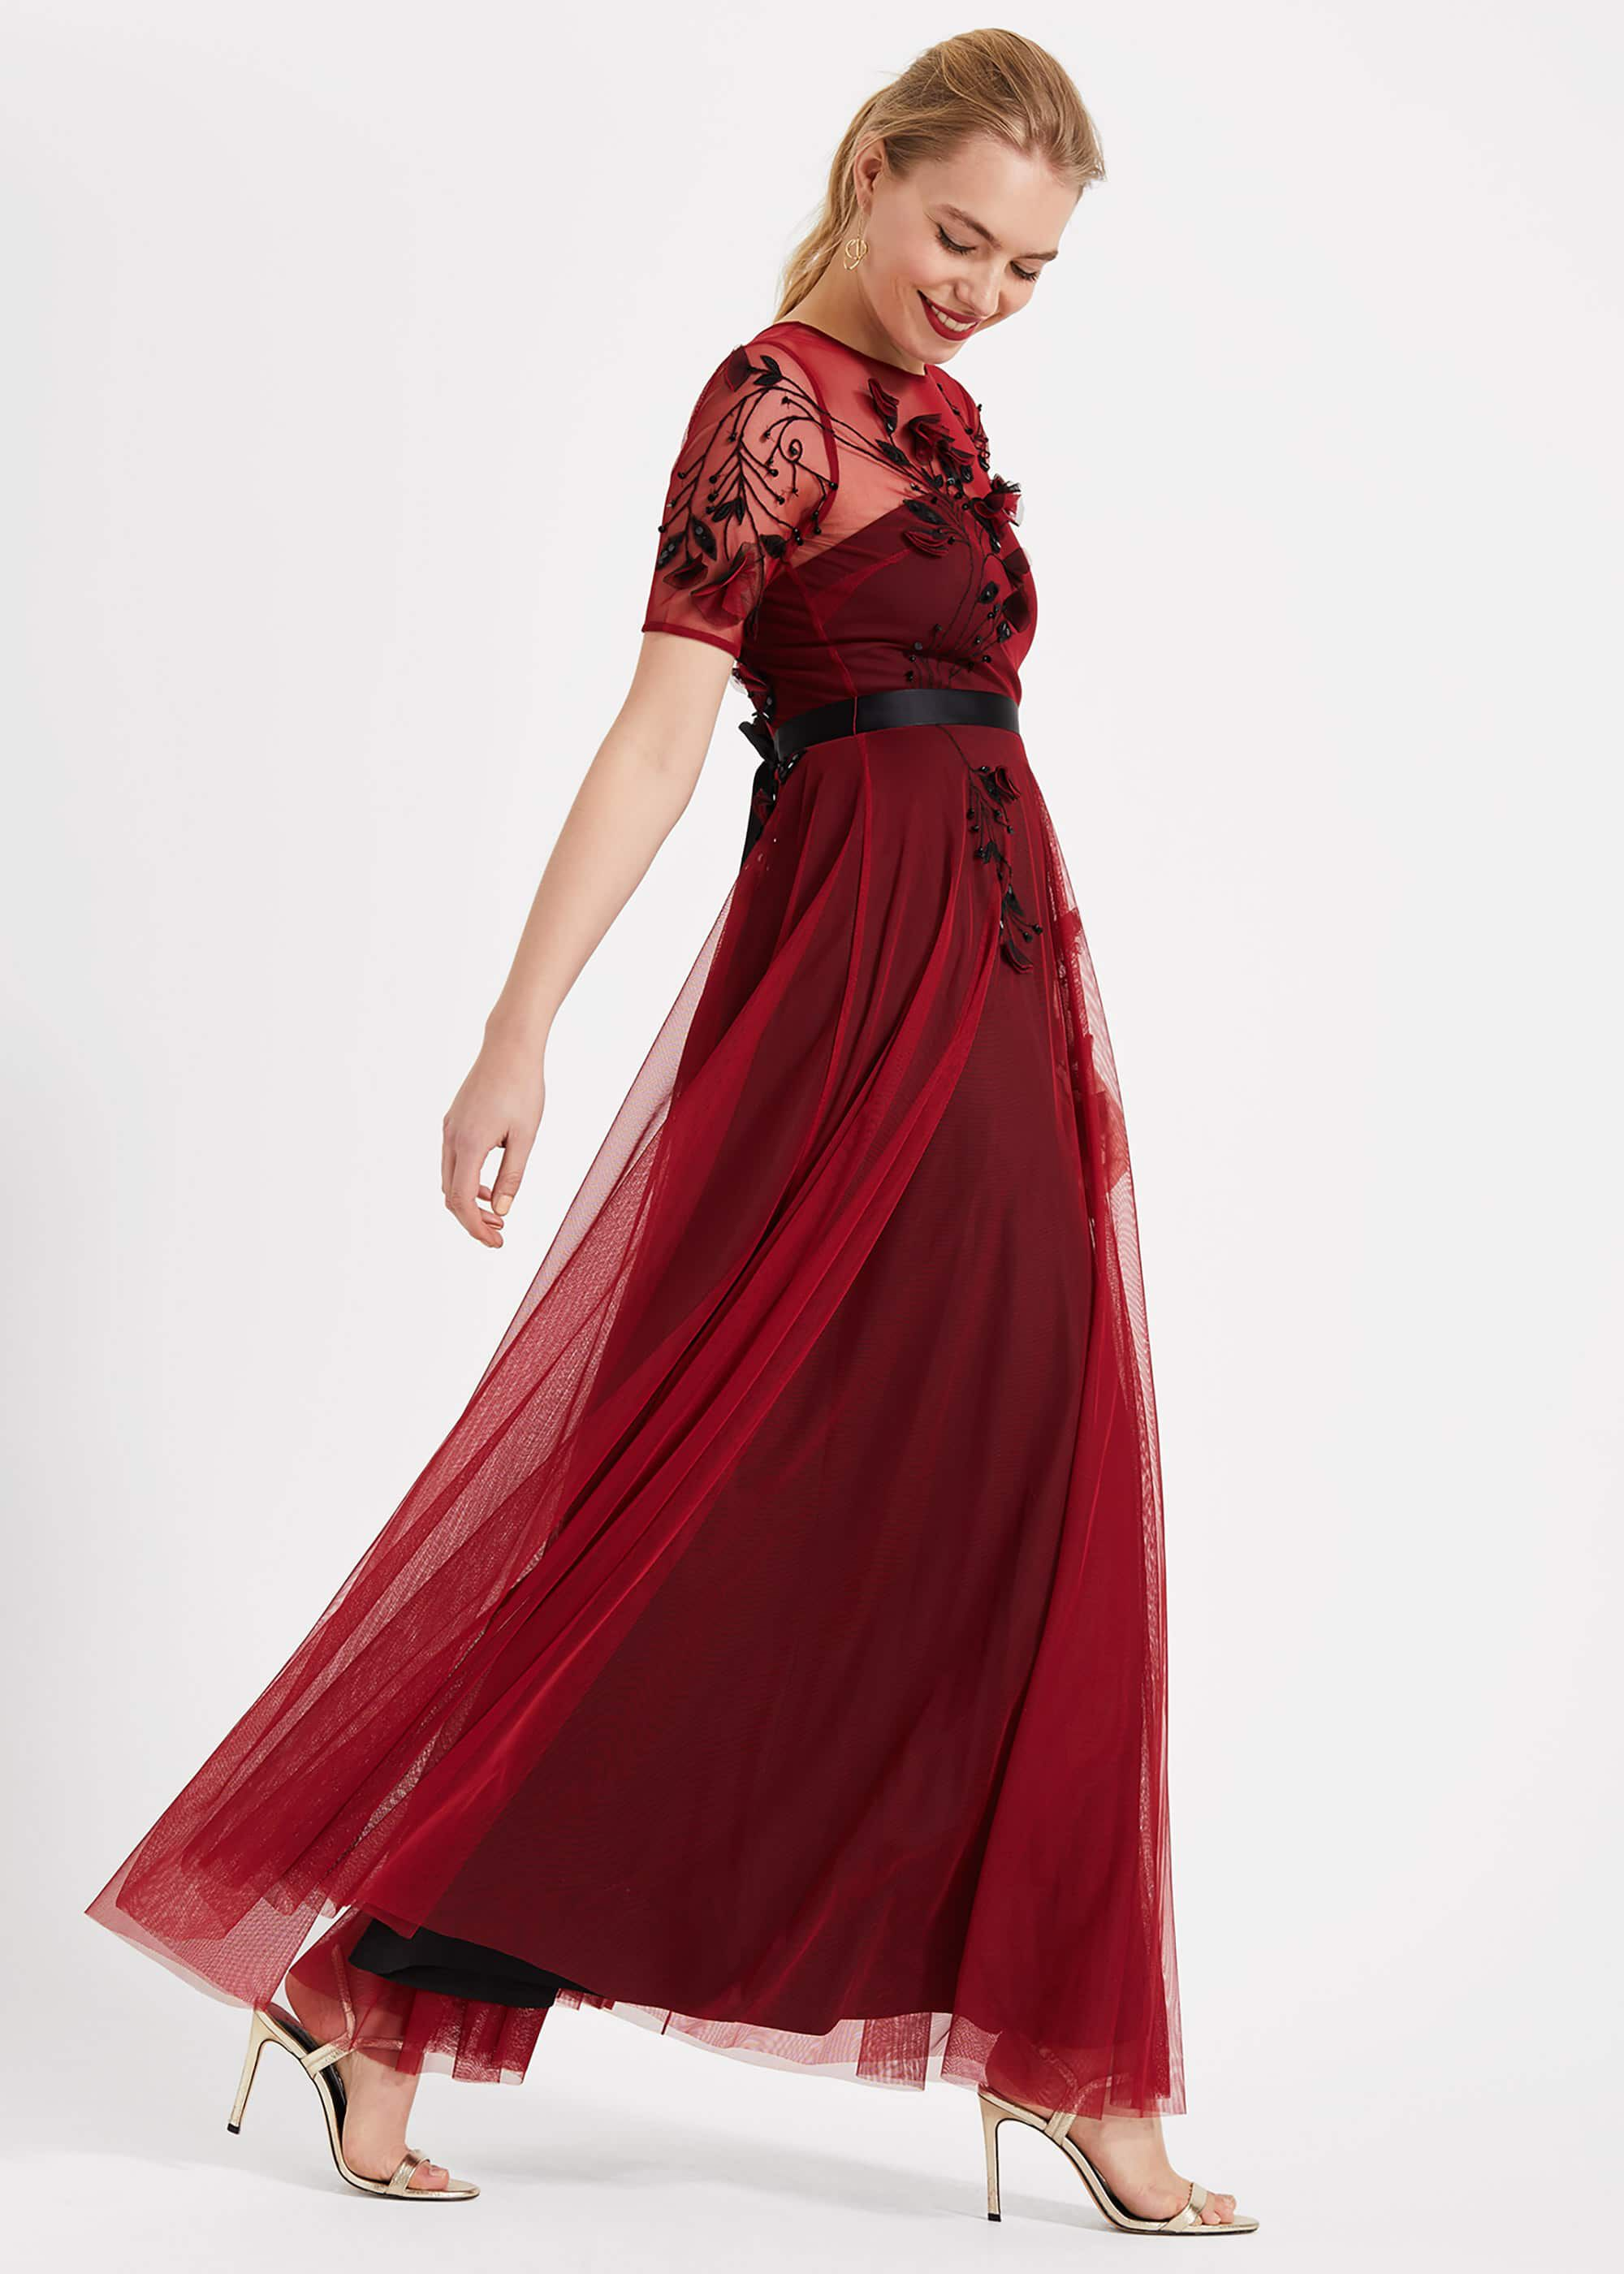 Phase Eight Anna Embroidered Maxi Dress, Red, Maxi, Occasion Dress